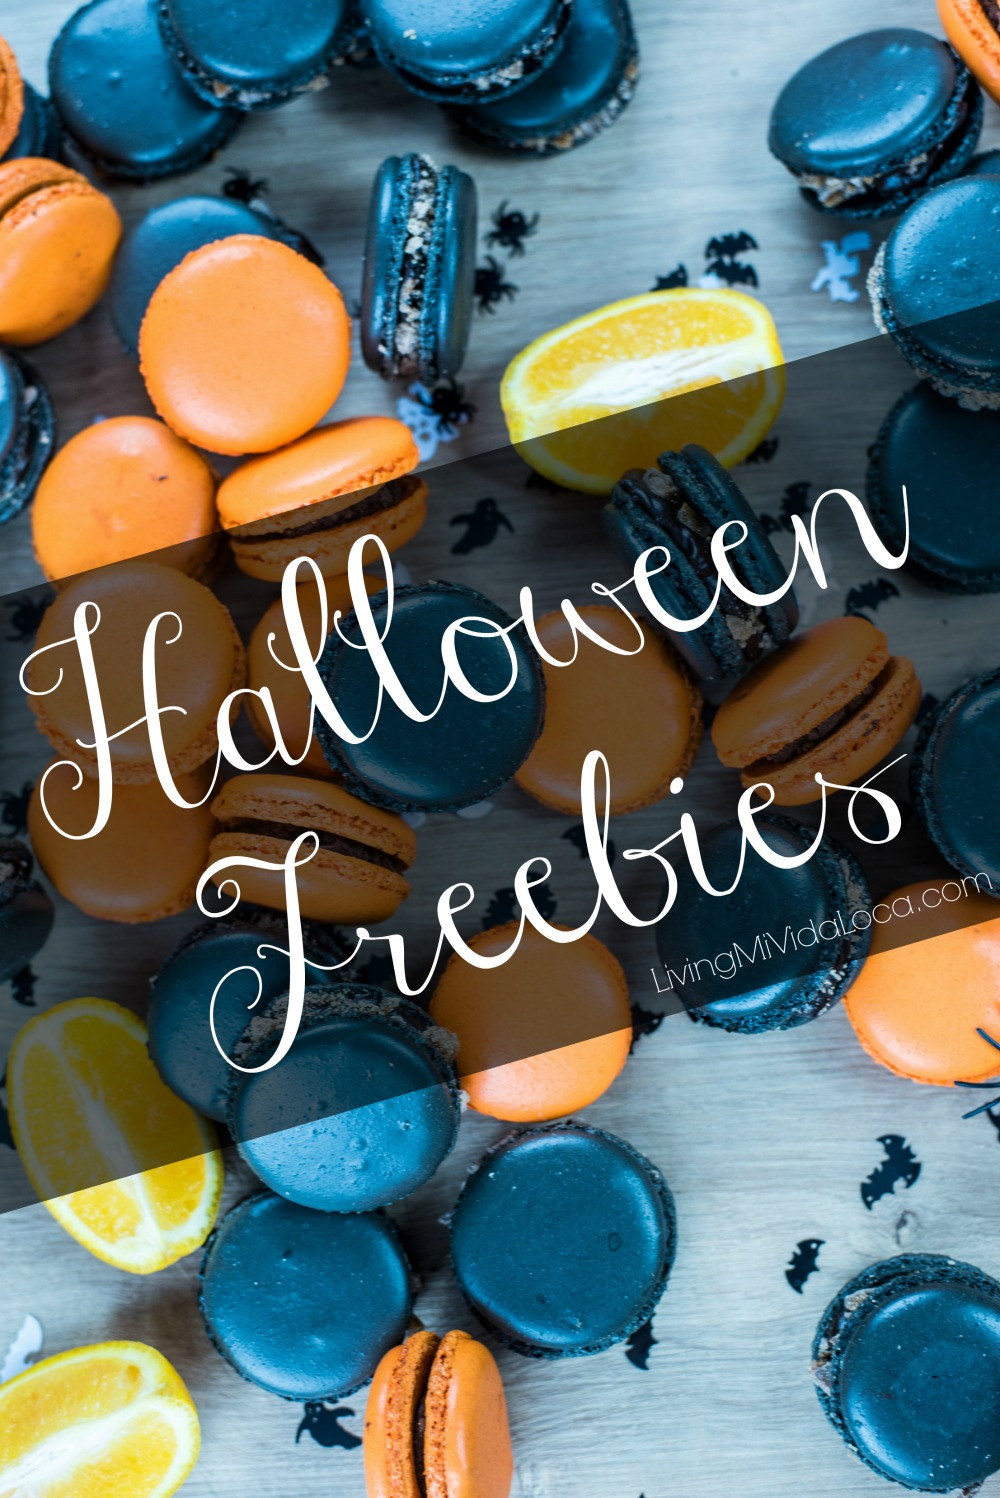 Halloween freebies 2018 - livingmividaloca.com